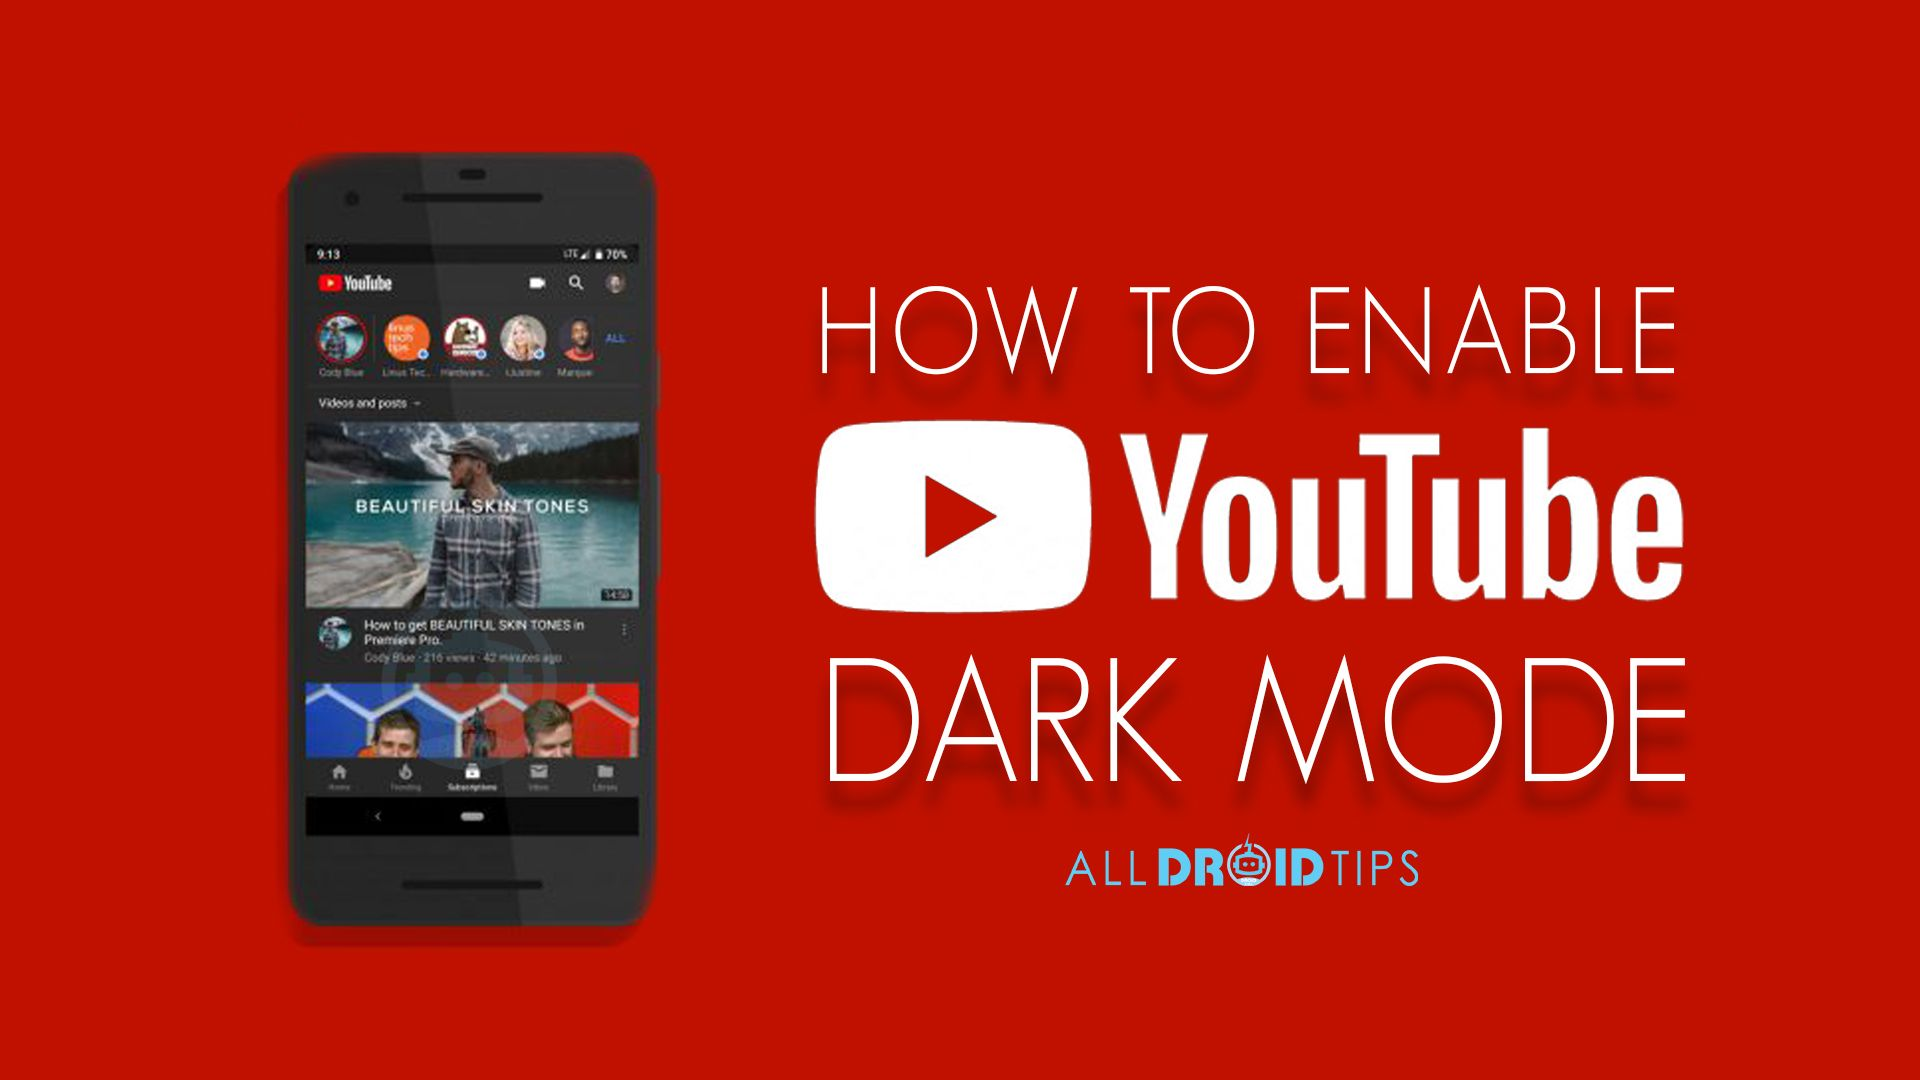 Android users can now use YouTube's 'dark mode' theme on